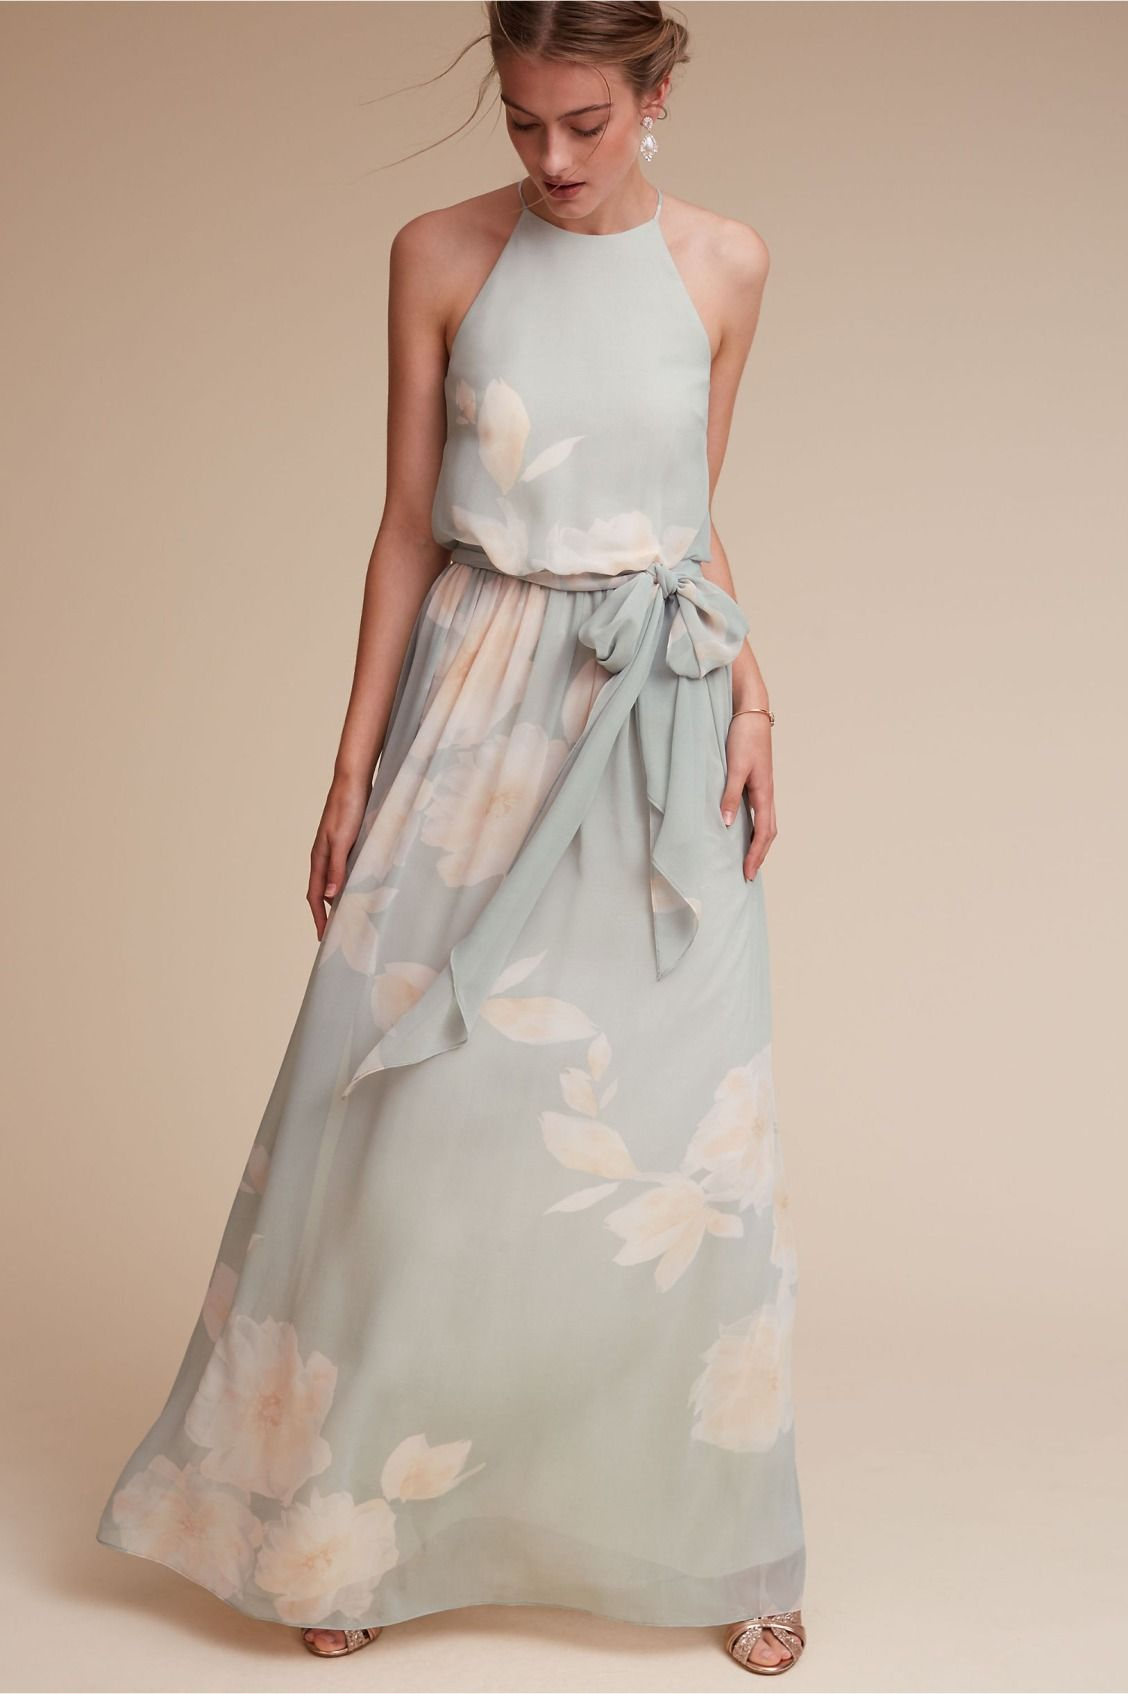 Blue mist alana dress from bhldn a touch of whimsy pinterest